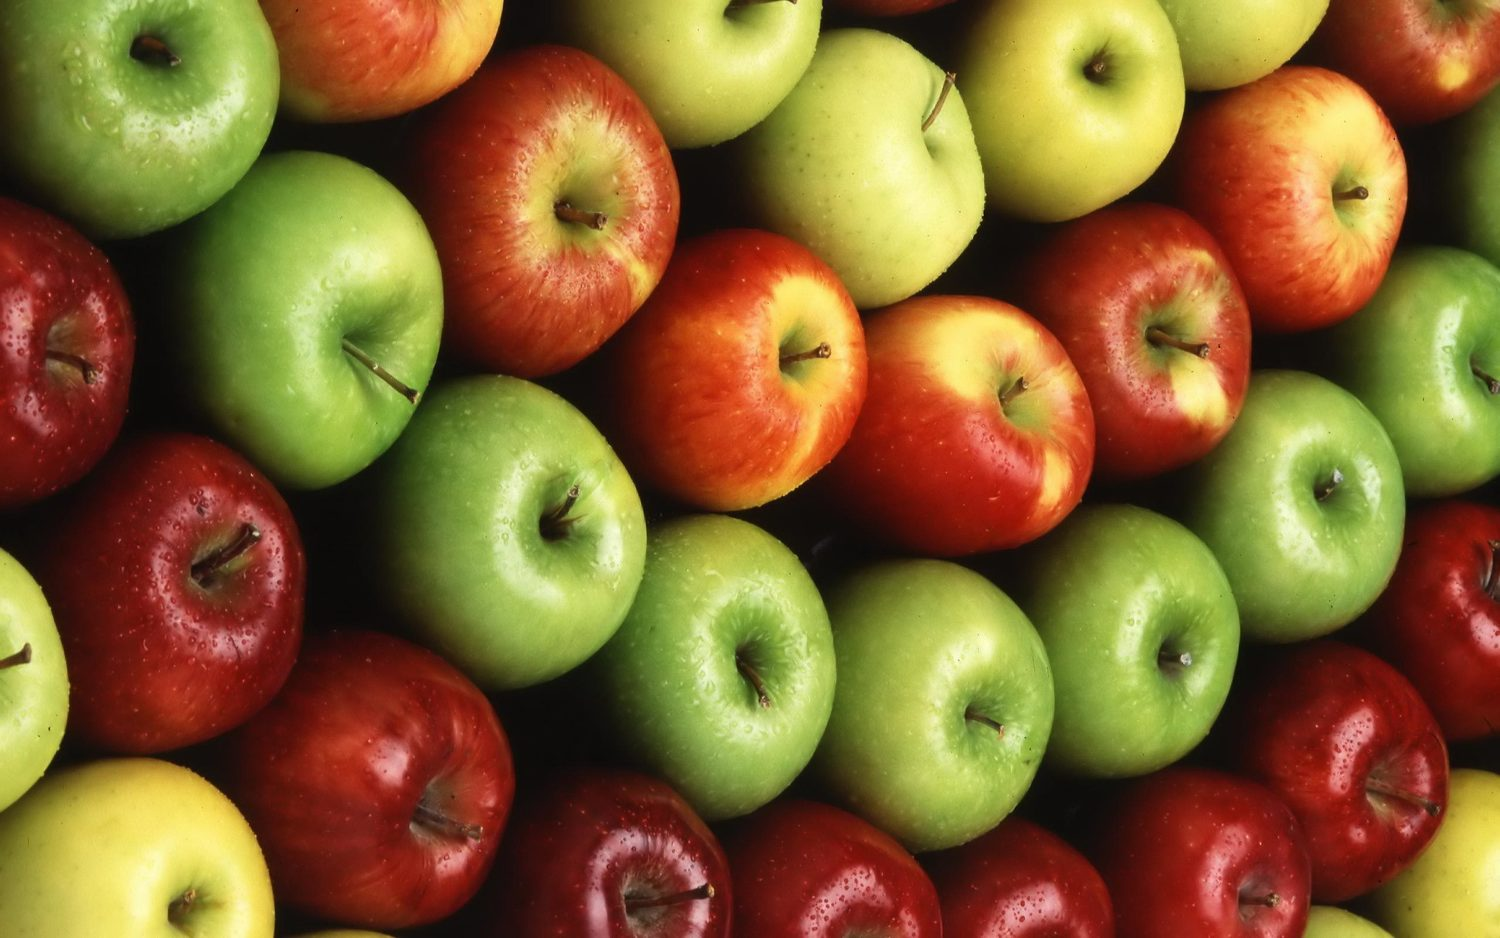 Why Apples Don't Grow on Trees